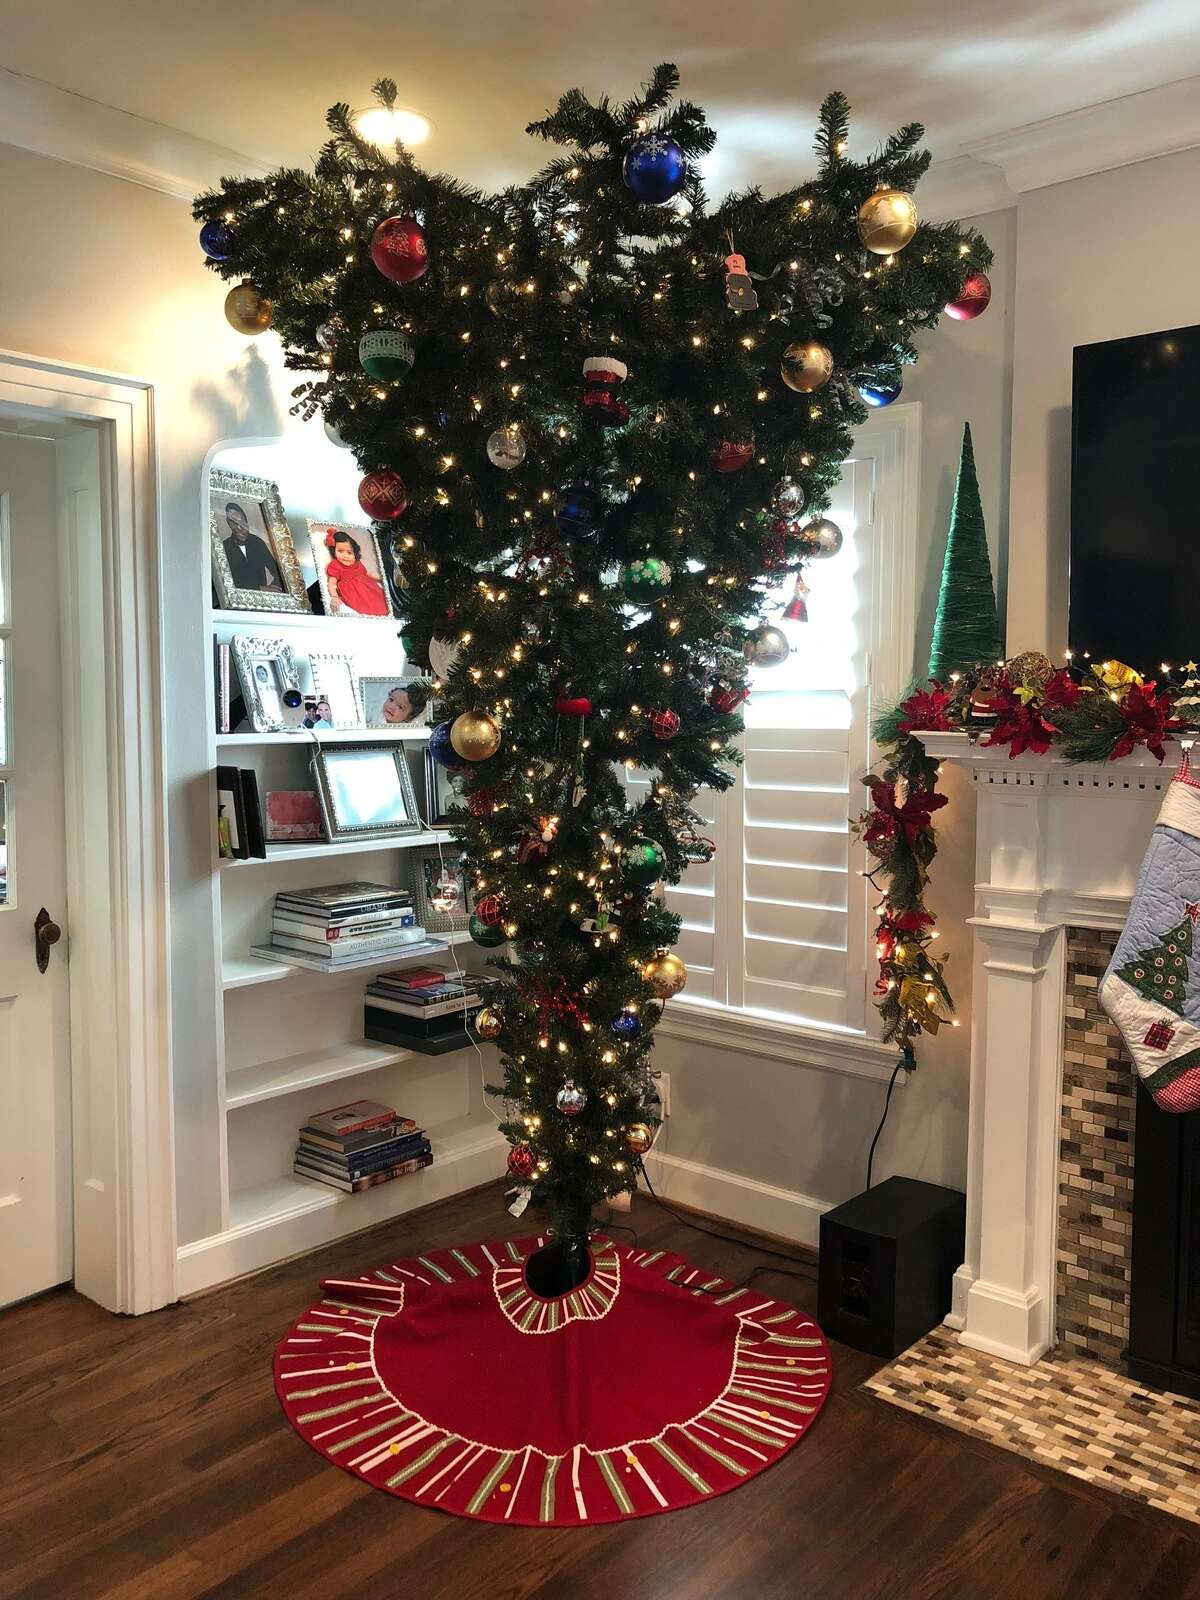 An inverted Christmas tree in the home of a Houston resident. >>Check out these creative ways to decorate your tree, upside down or not ...